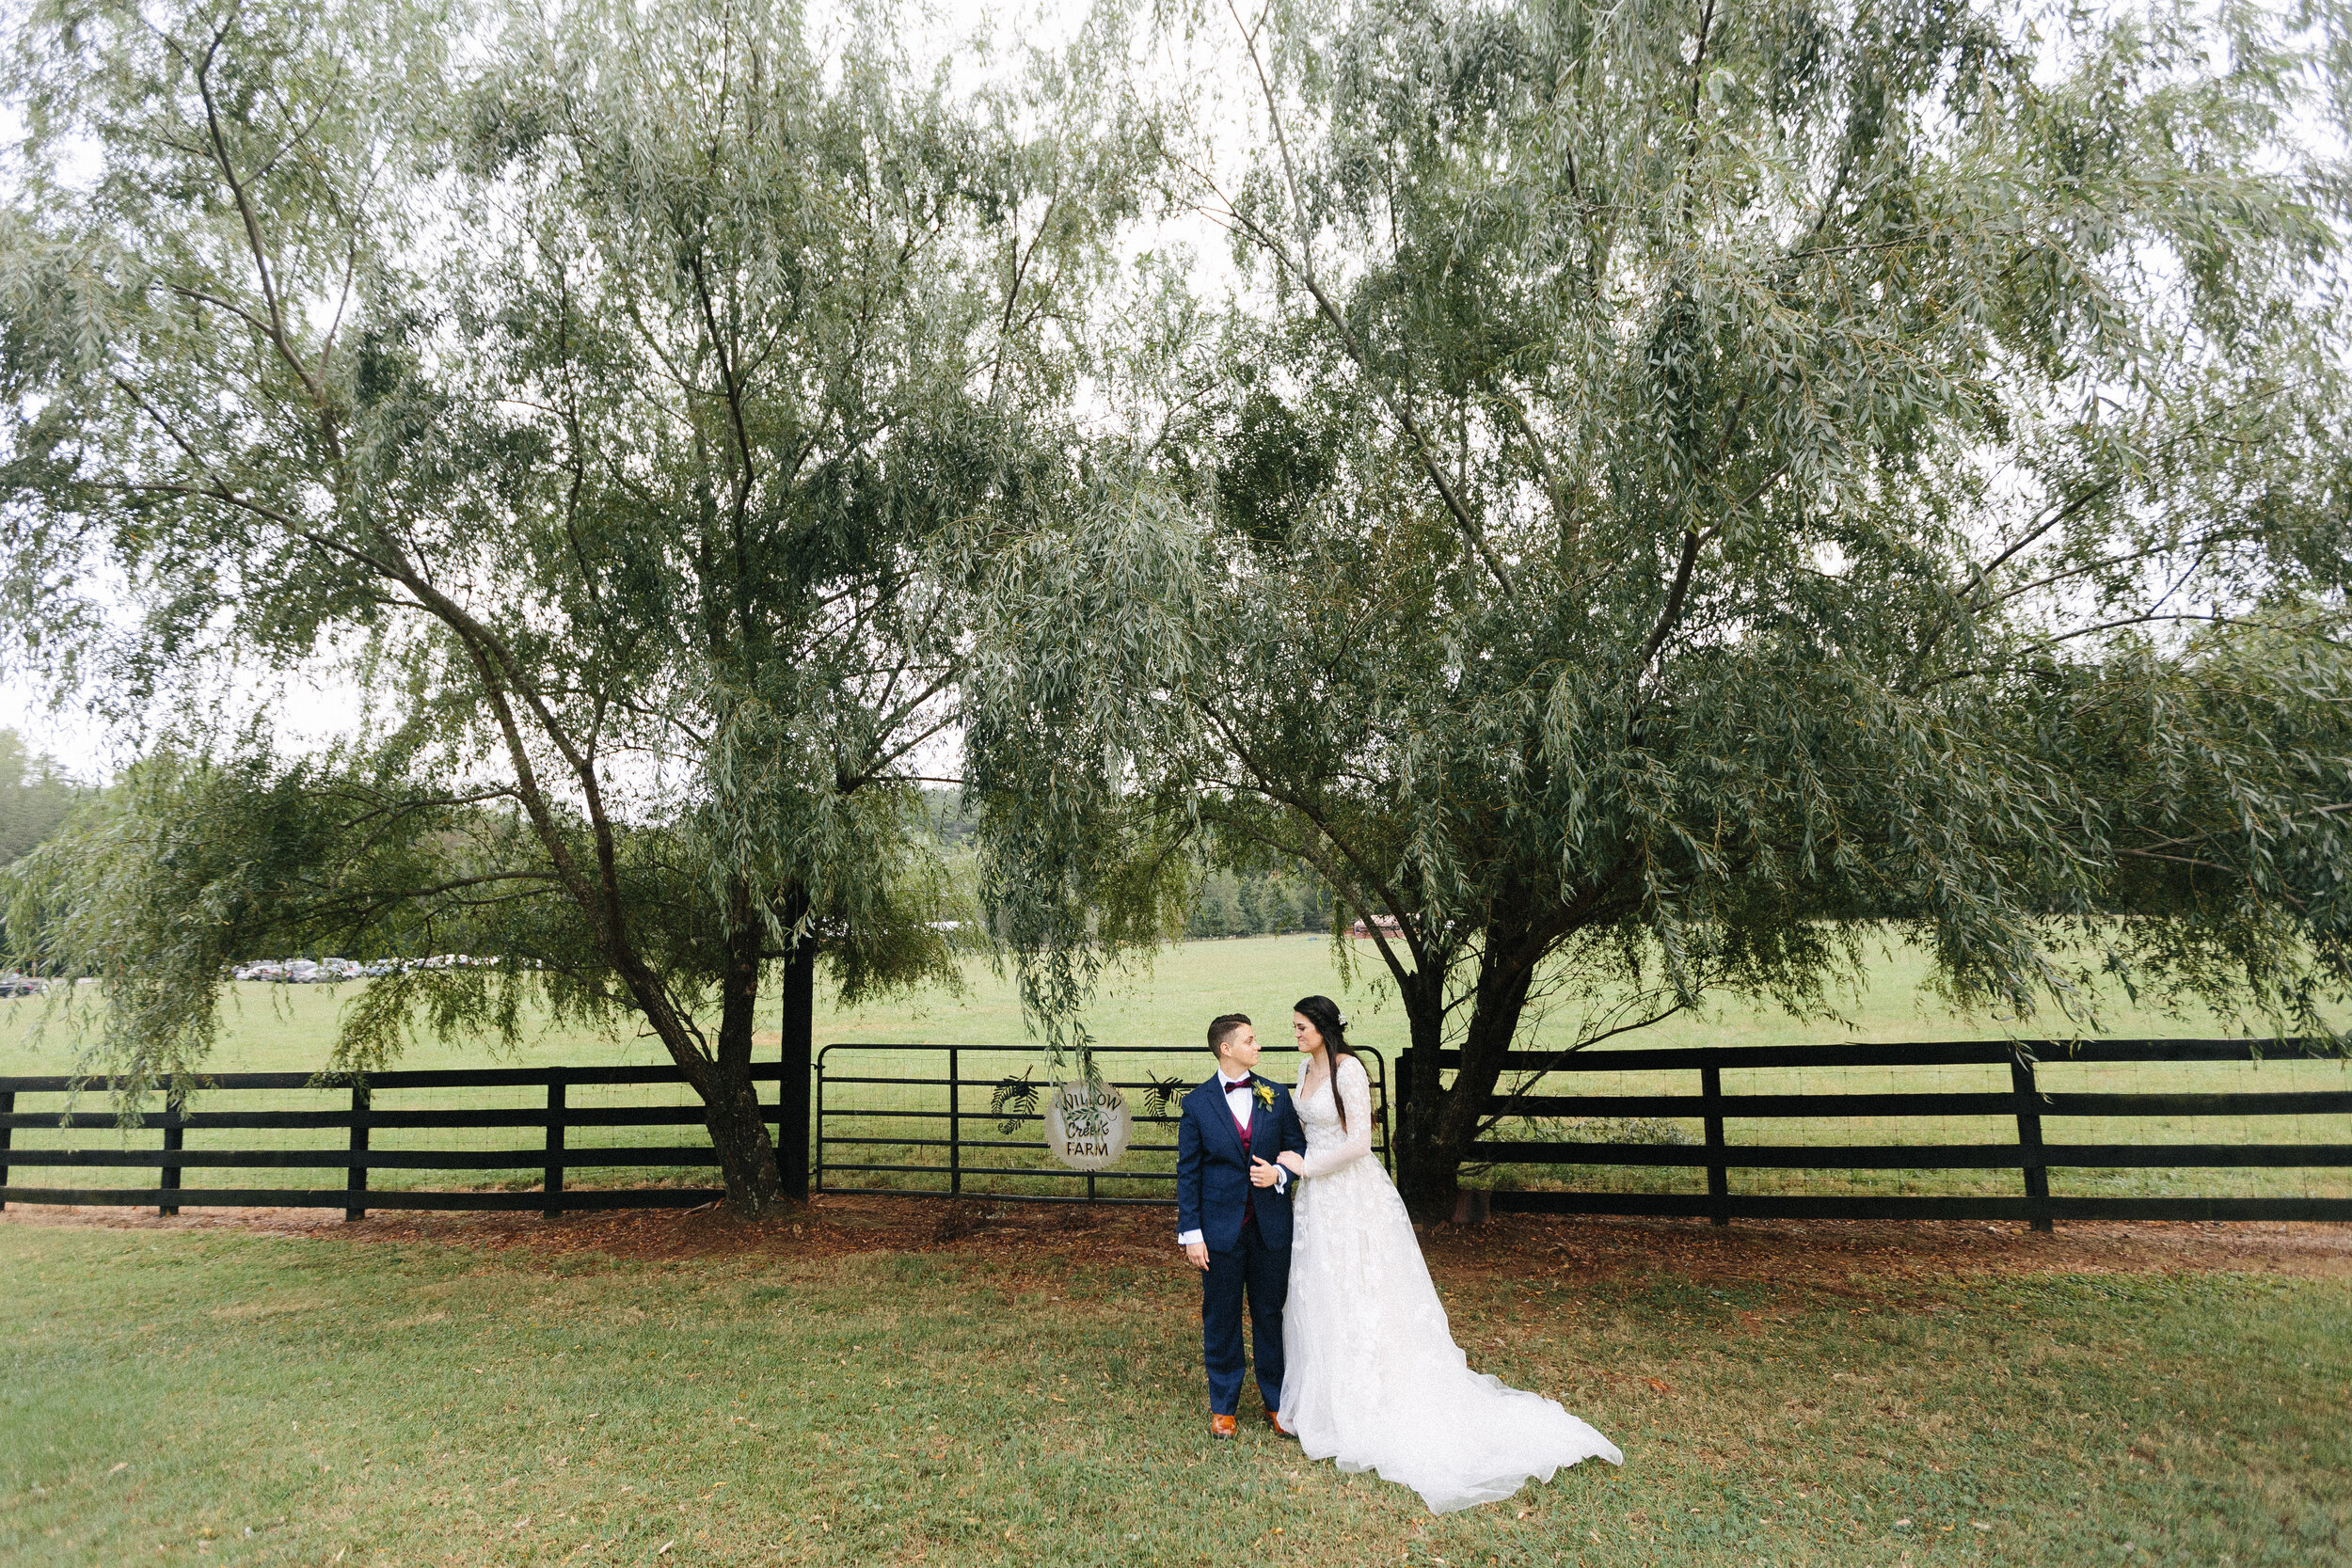 atlanta_wedding_photographers_georgia_same_sex_rustic_barn_farm_lesbian_weddings_inclusive_2229.jpg